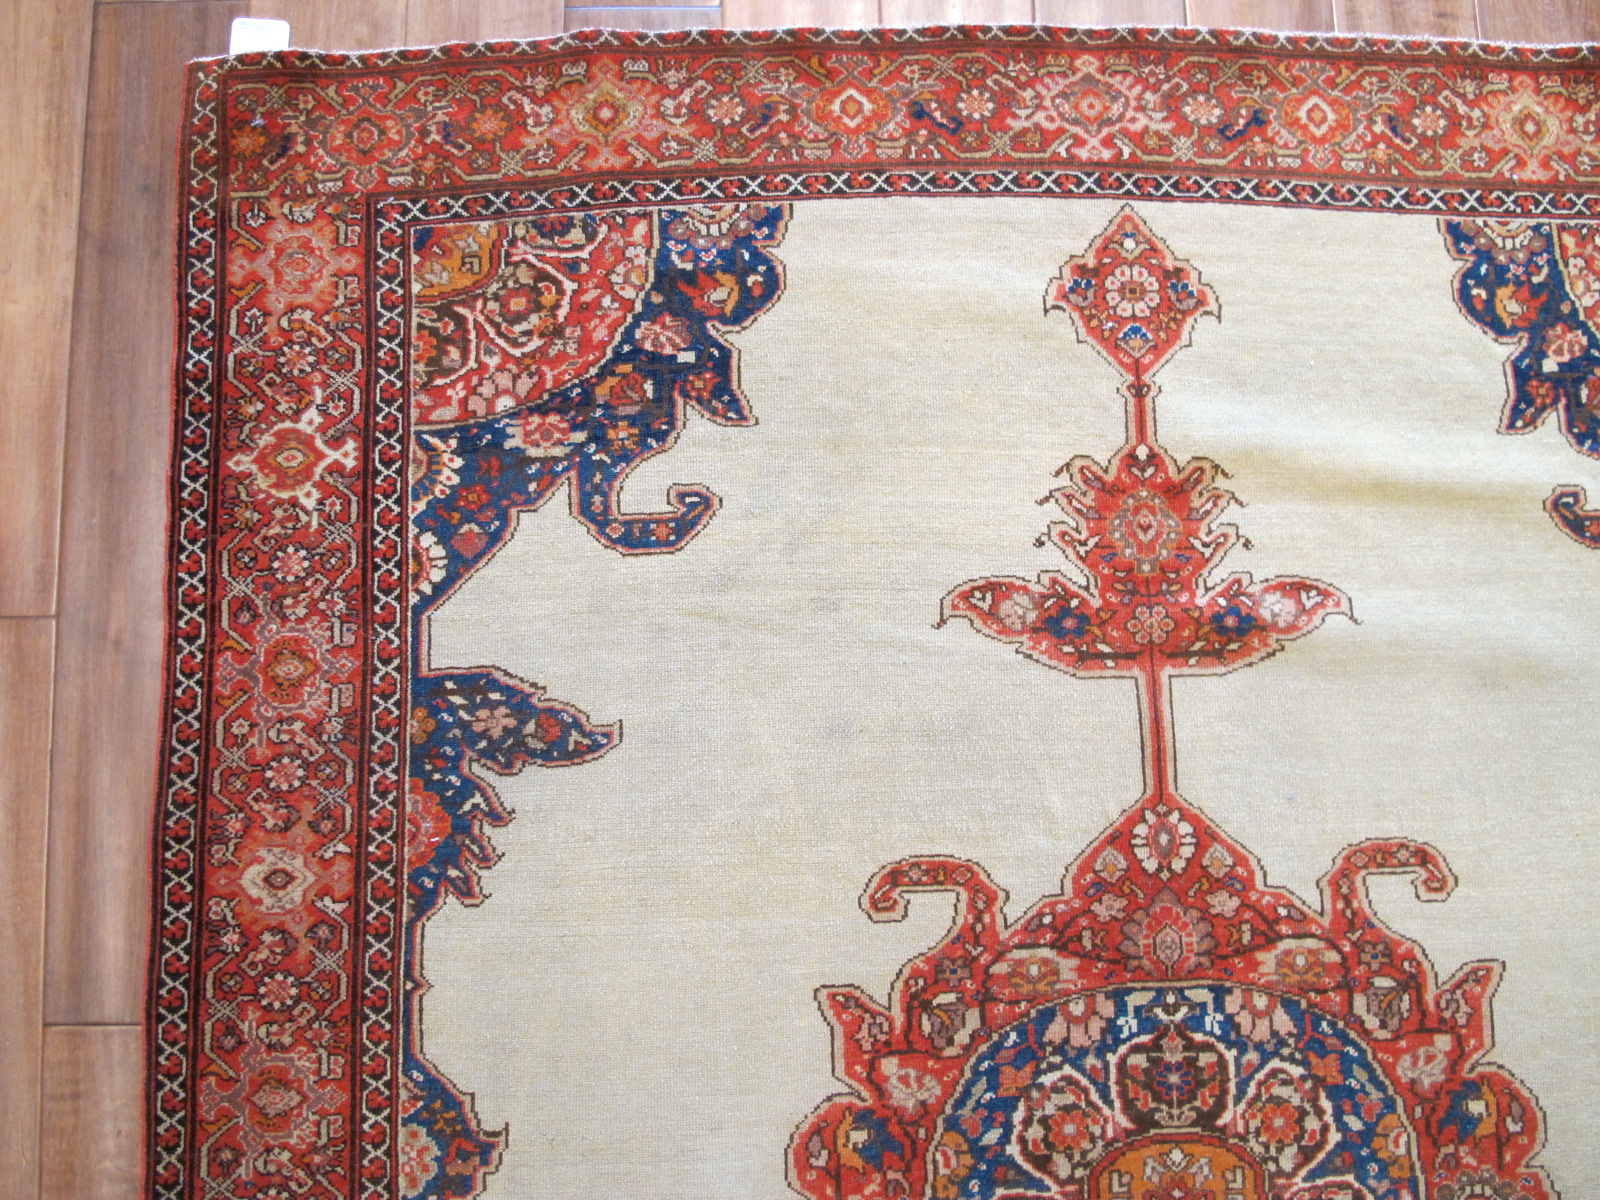 23020 antique malayer mishan rug 5 x 6,6 (2)